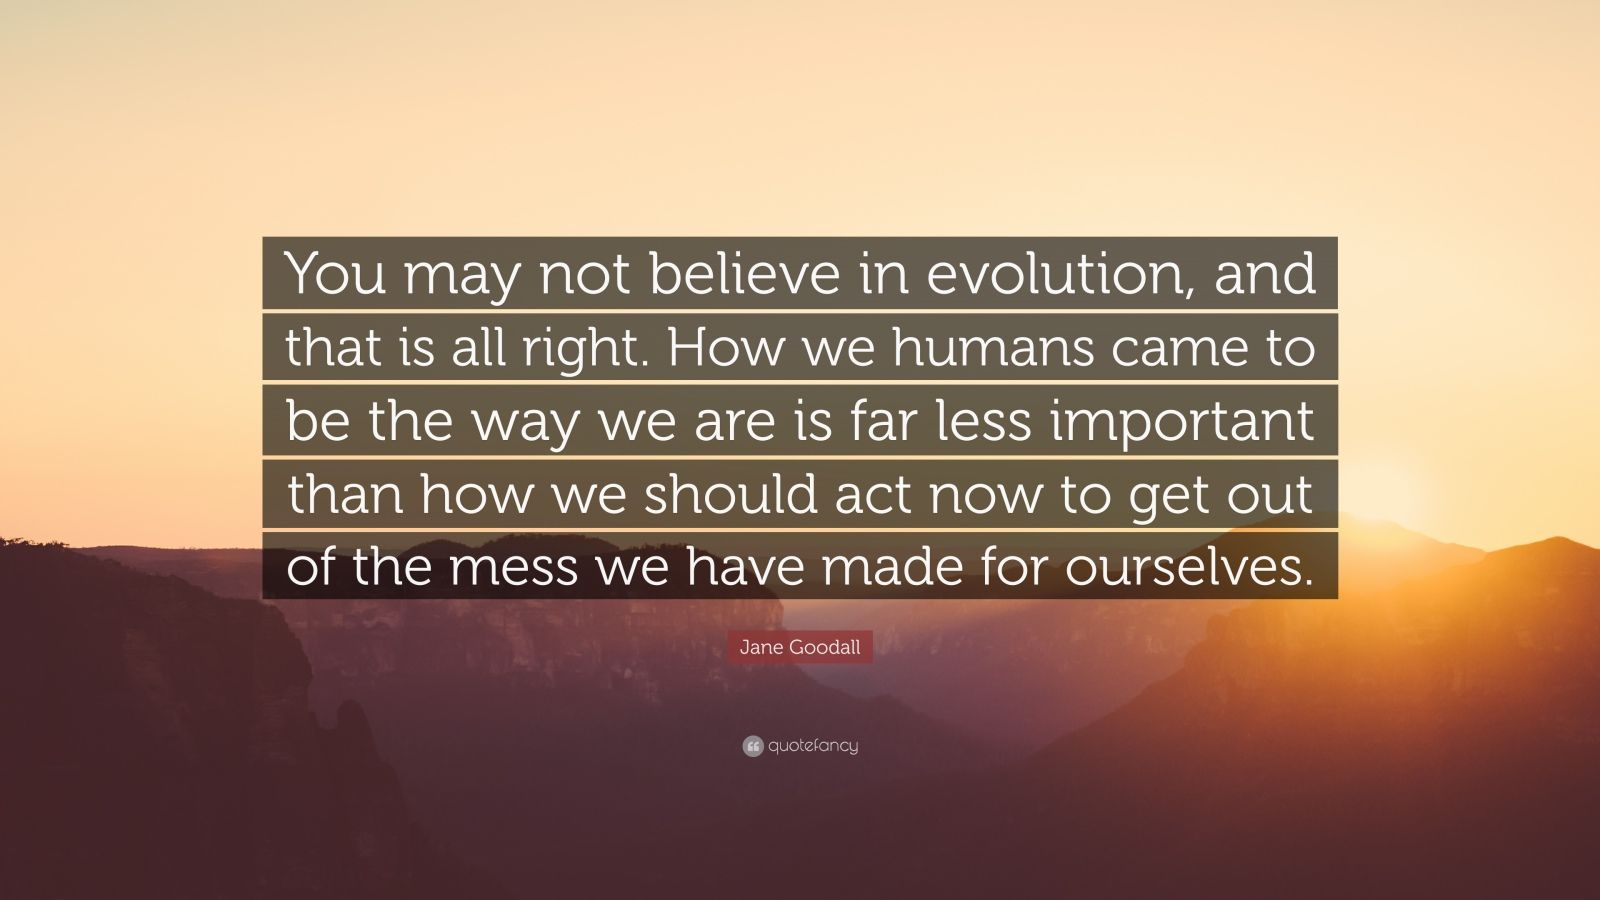 """Jane Goodall Quote: """"You may not believe in evolution, and that is all right. How we humans came to be the way we are is far less important than how we should act now to get out of the mess we have made for ourselves."""""""